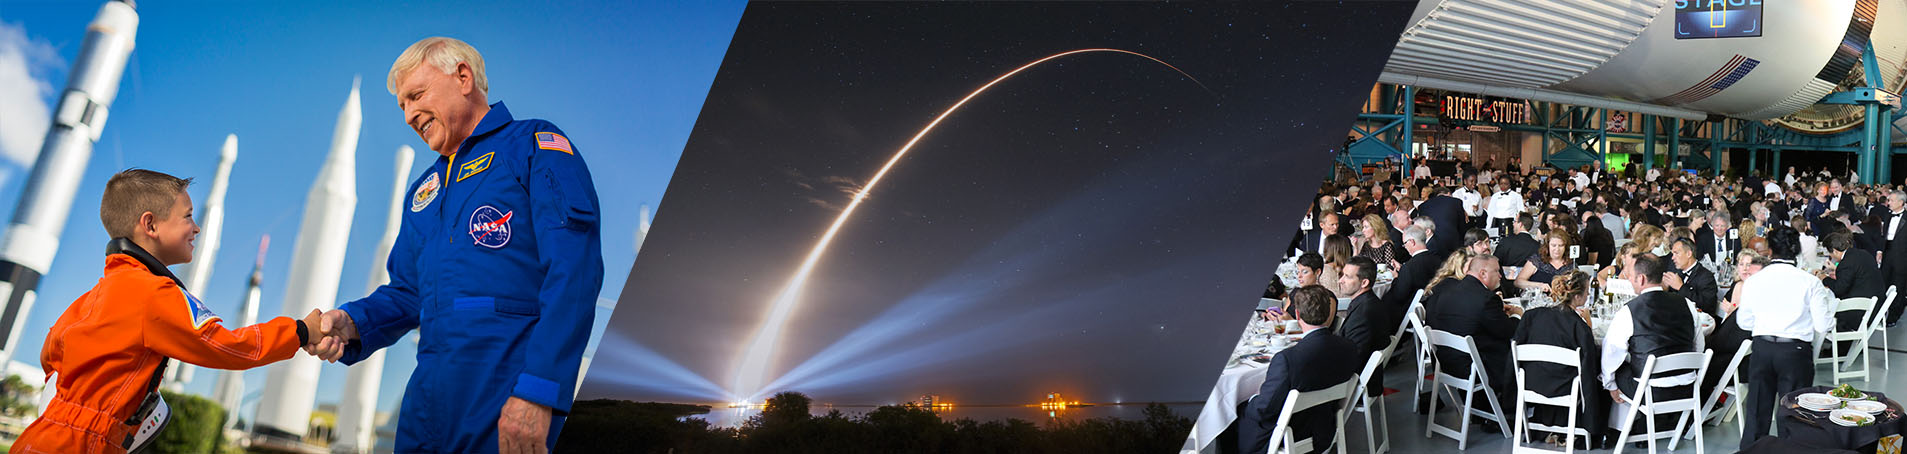 Kennedy Space Center launches and events header